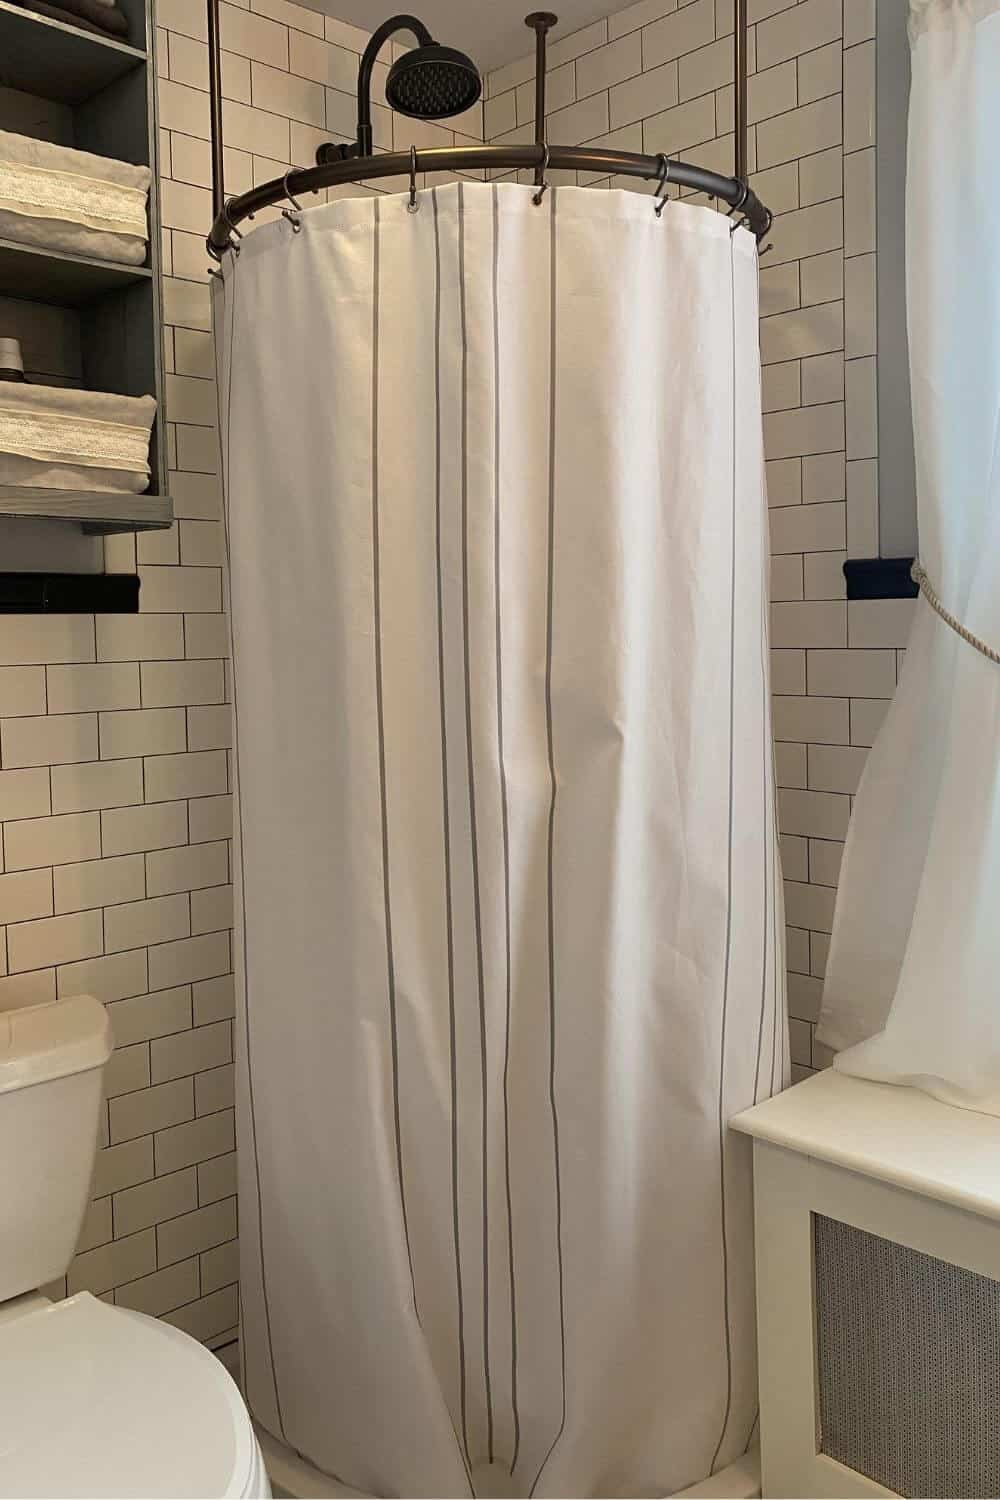 White and gray striped shower curtain for corner shower stall